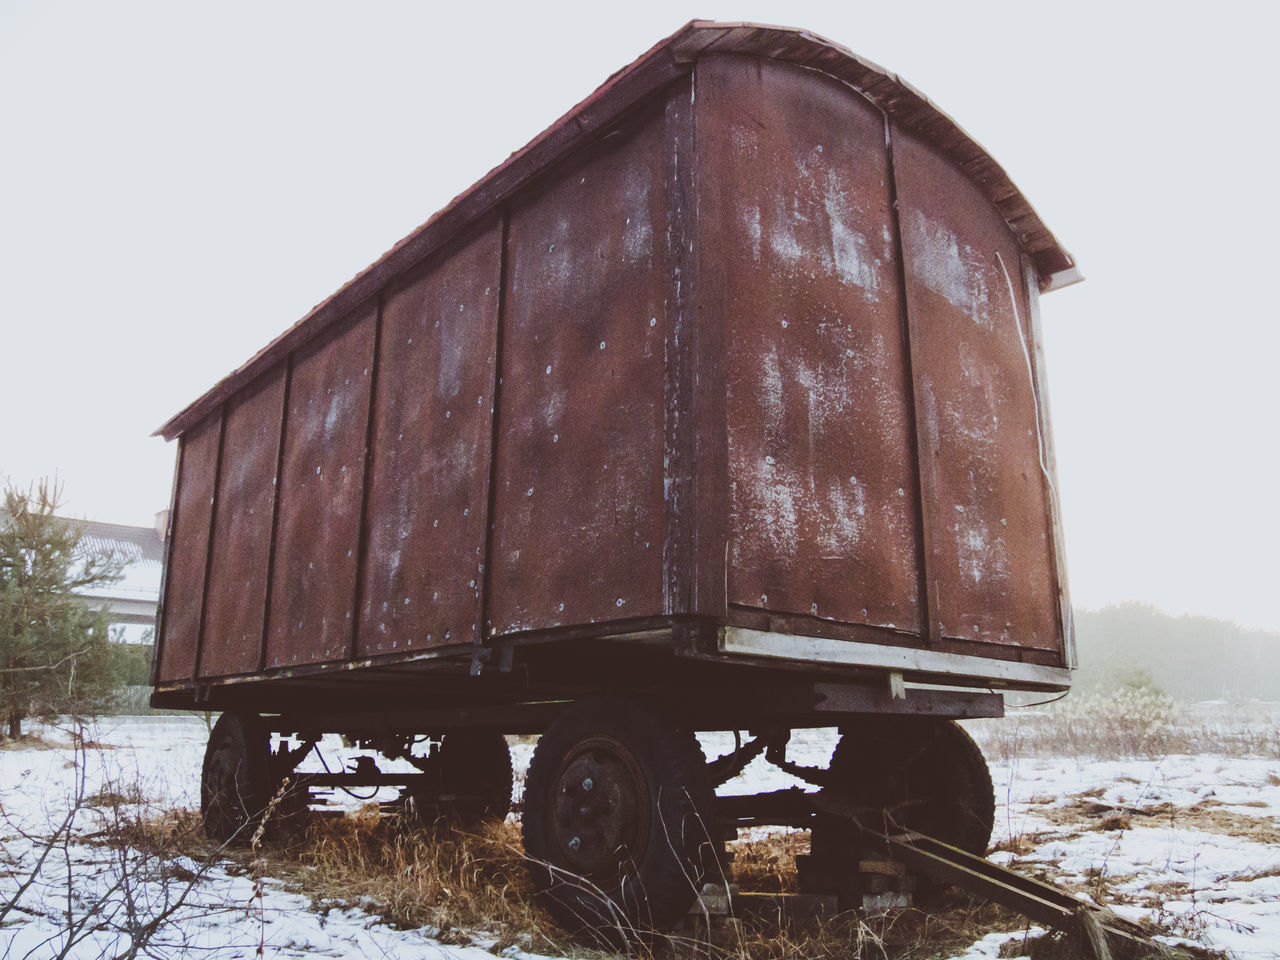 Low angle view of an old wagon standing in the field in winter. Cart Circus Covered Wagon Freight Transportation Obsolete Old Old-fashioned Outdoors Plank Retro Styled Rural Scene Transportation Travel Wagon  Wheels Wood